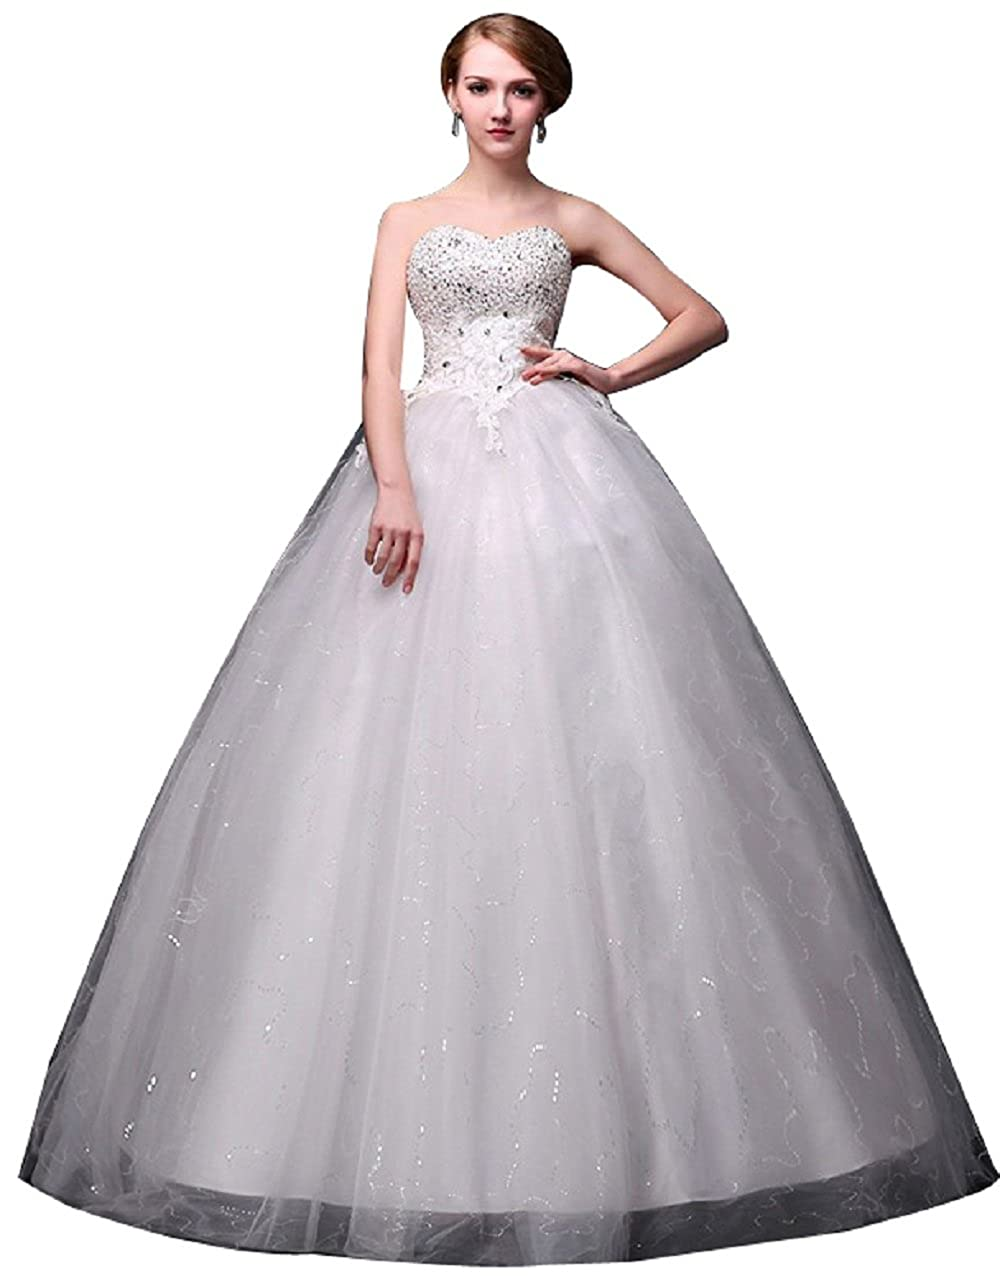 Jj Gogo Womens Strapless Ball Gown Style Wedding Dress With Lace Up